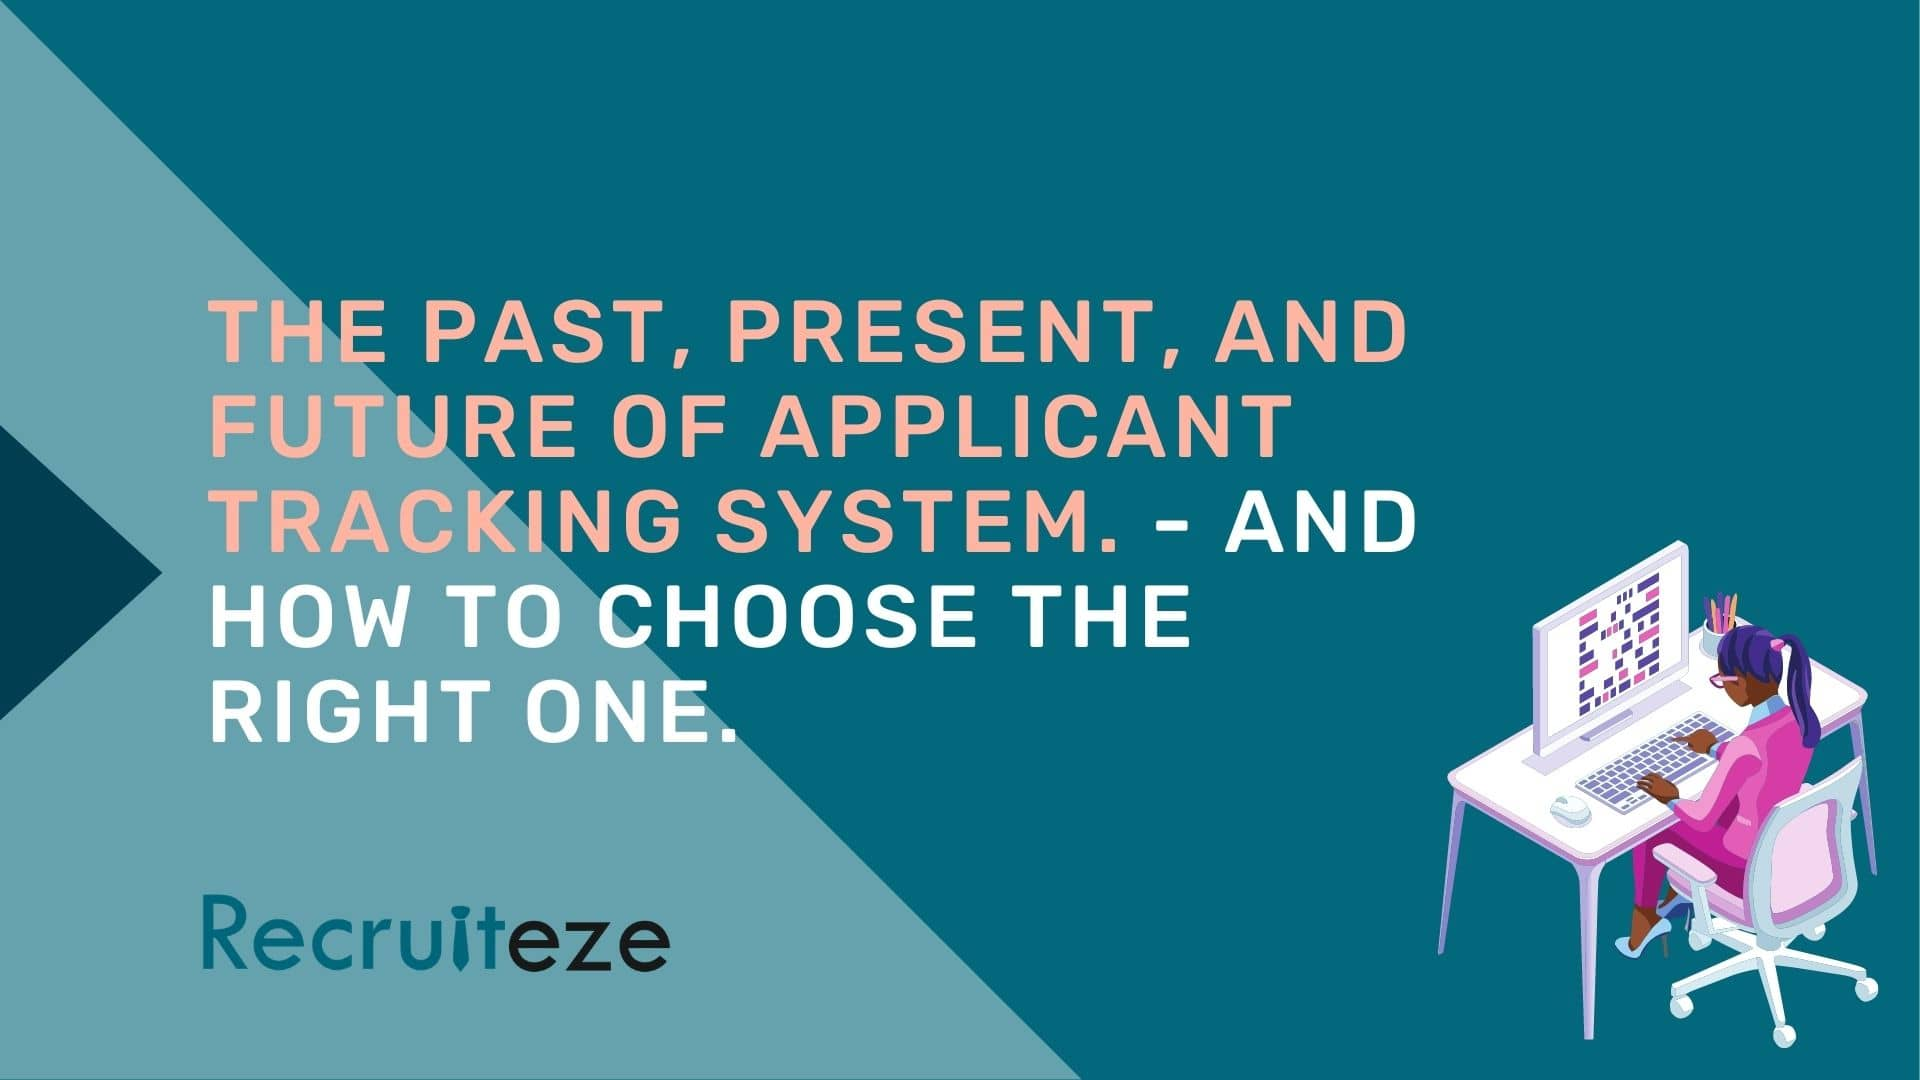 Recruiteze - applicant tracking system featured image